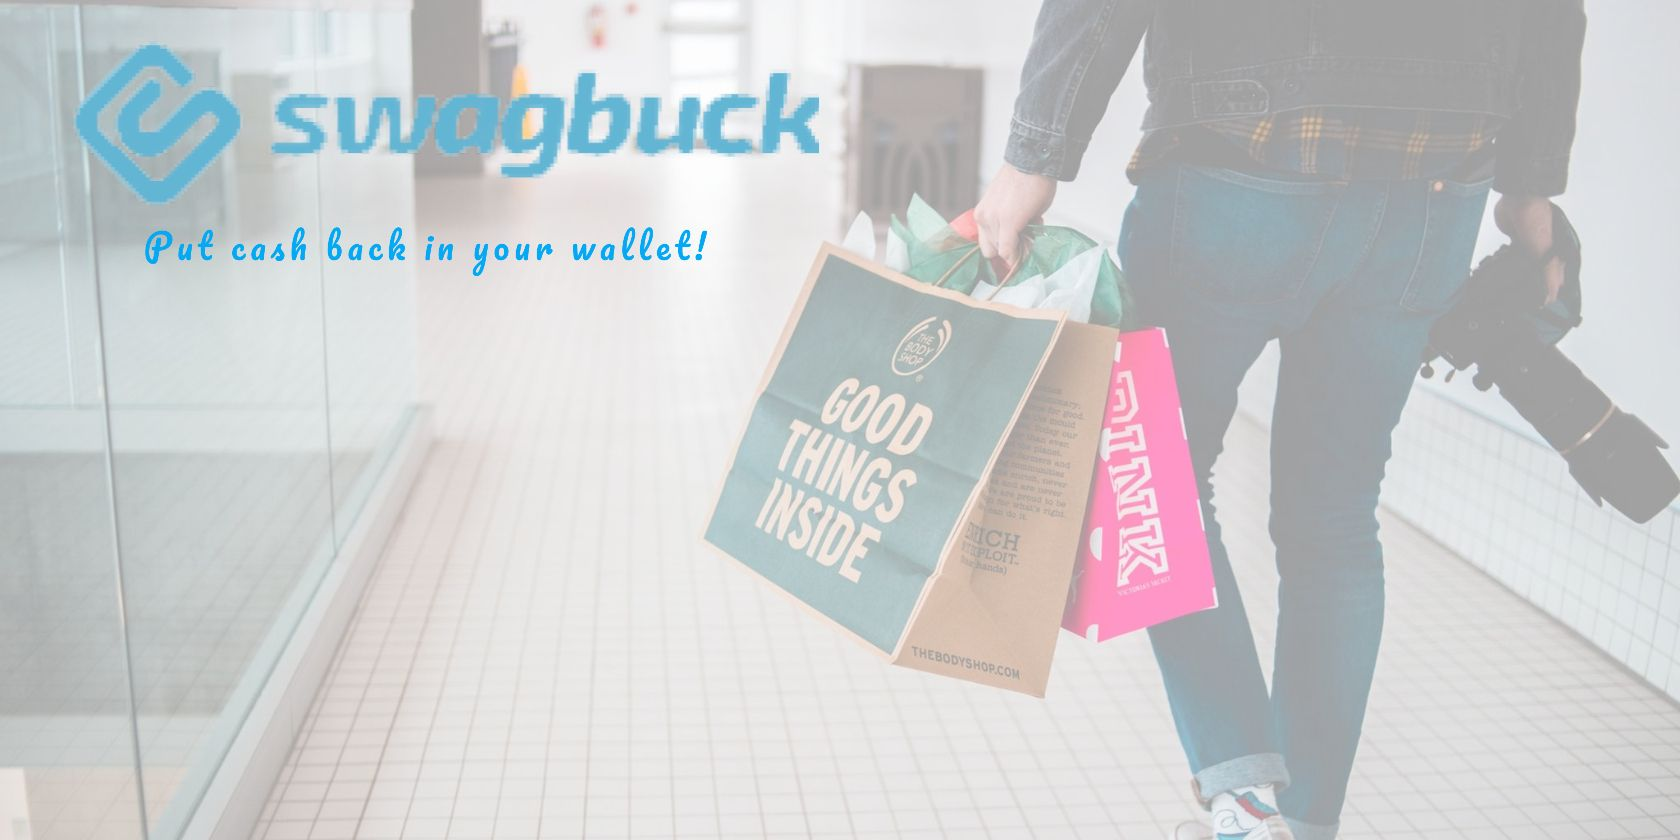 What Is Swagbucks? Is It Legit? Everything You Need to Know